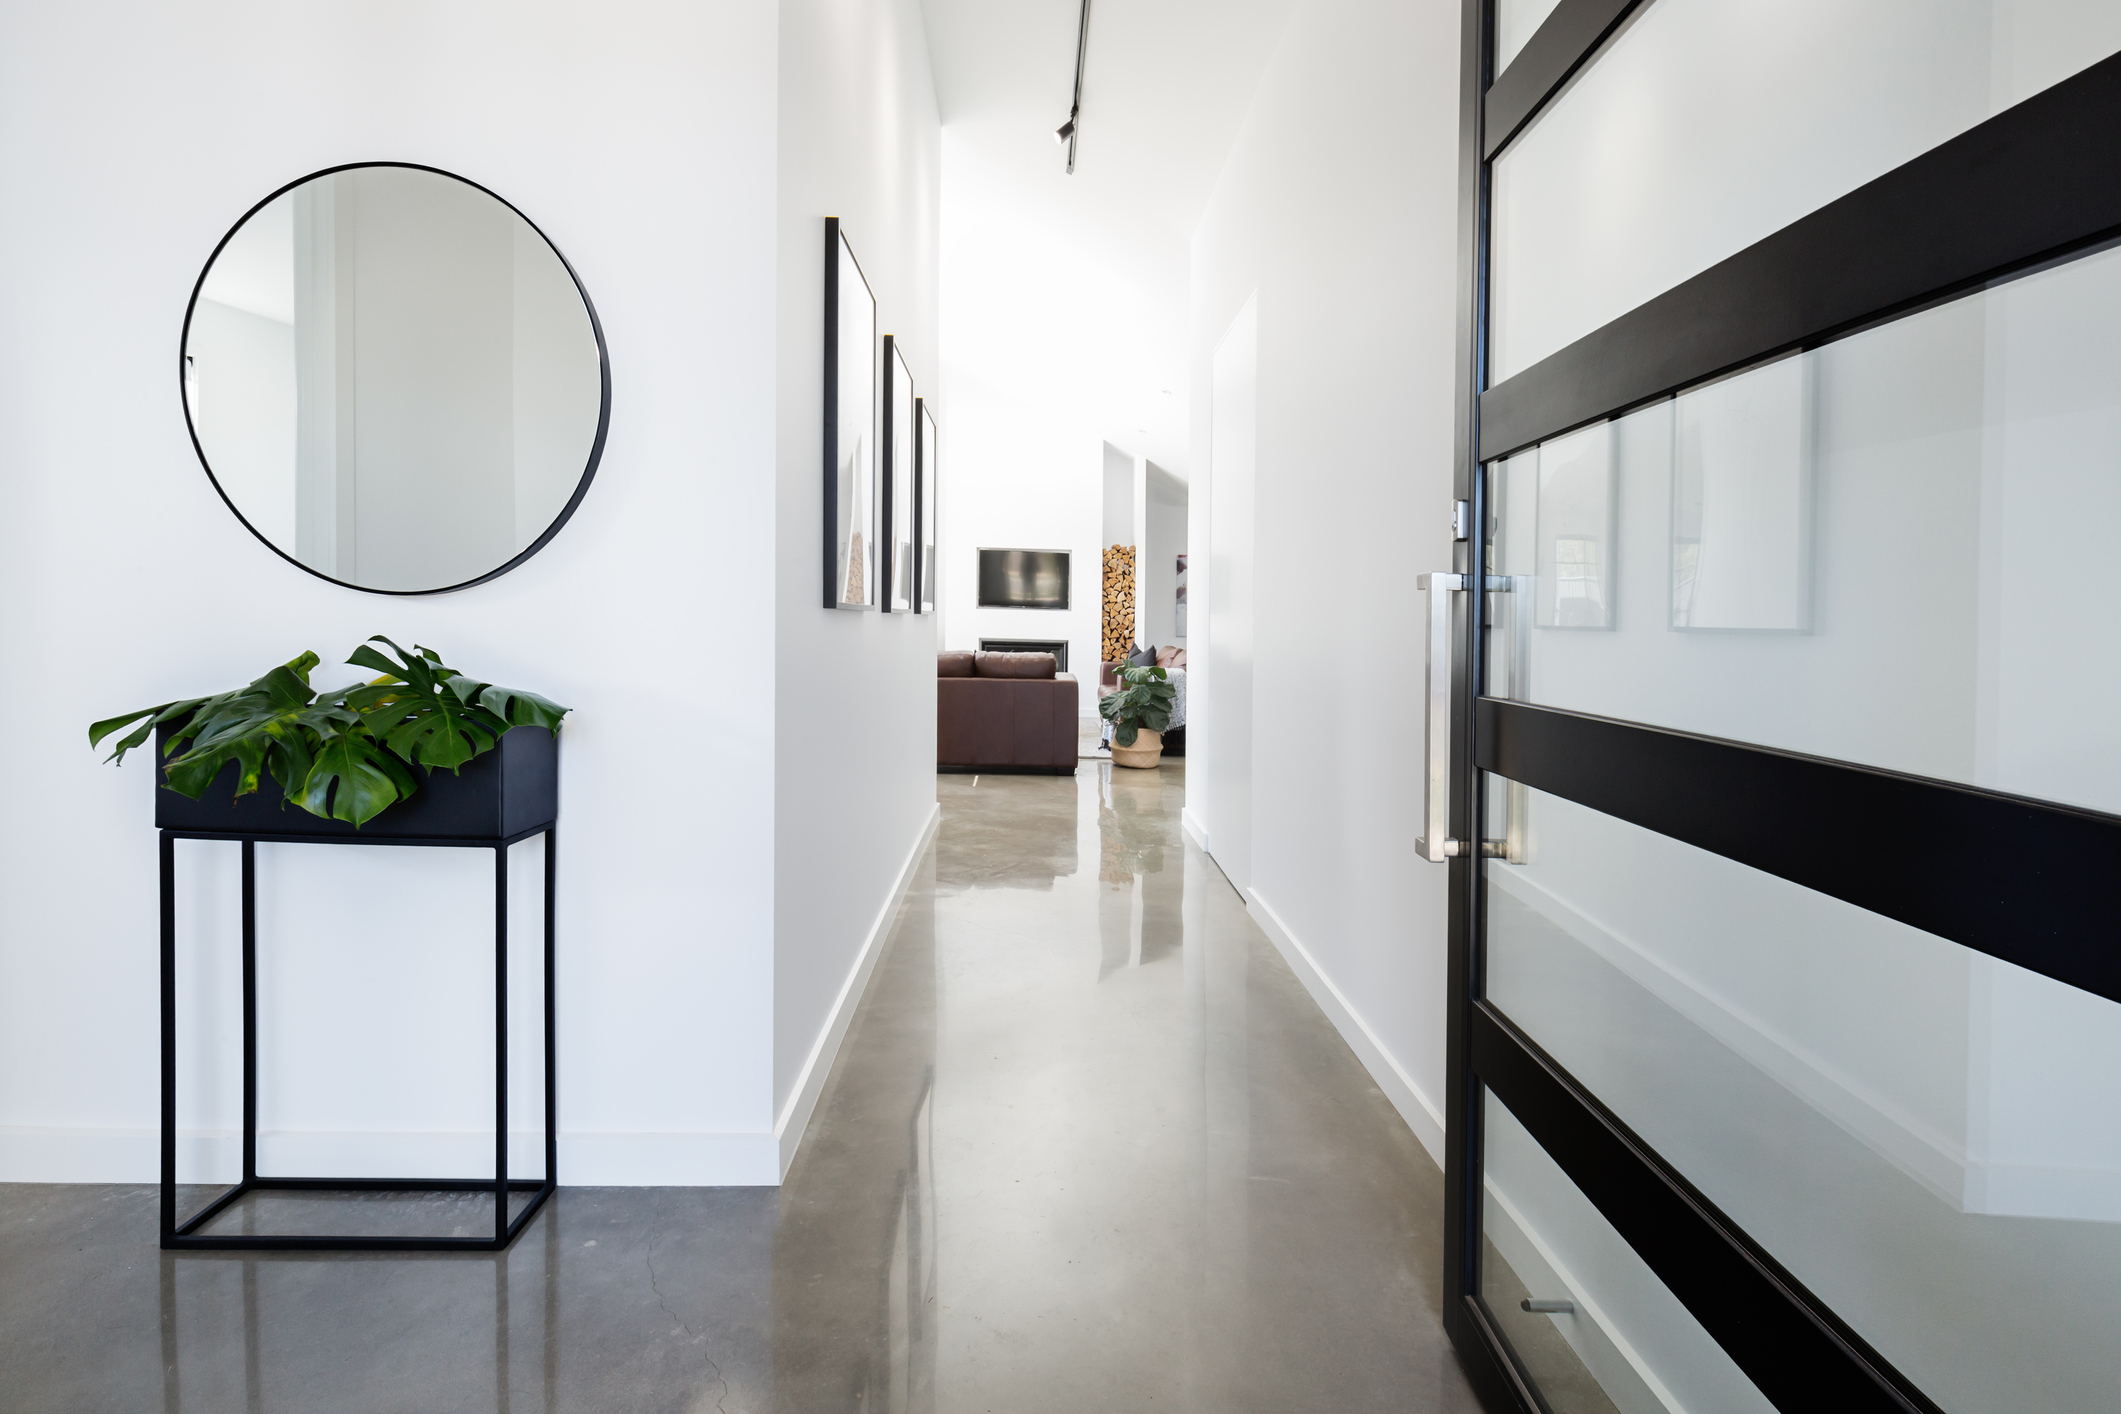 Securing Floor And Wall Mirrors Large Mirror Installation Hipages Com Au